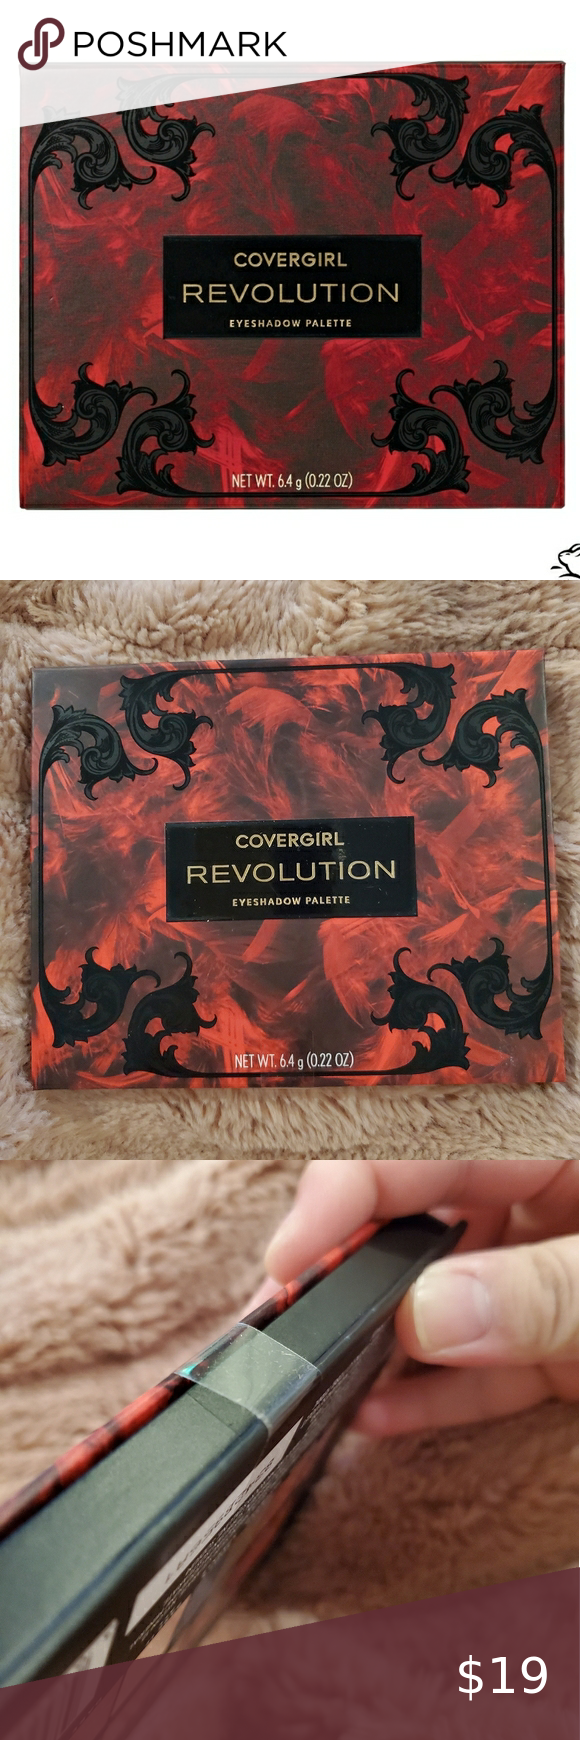 Covergirl Revolution eyeshadow palette NWT in 2020 (With